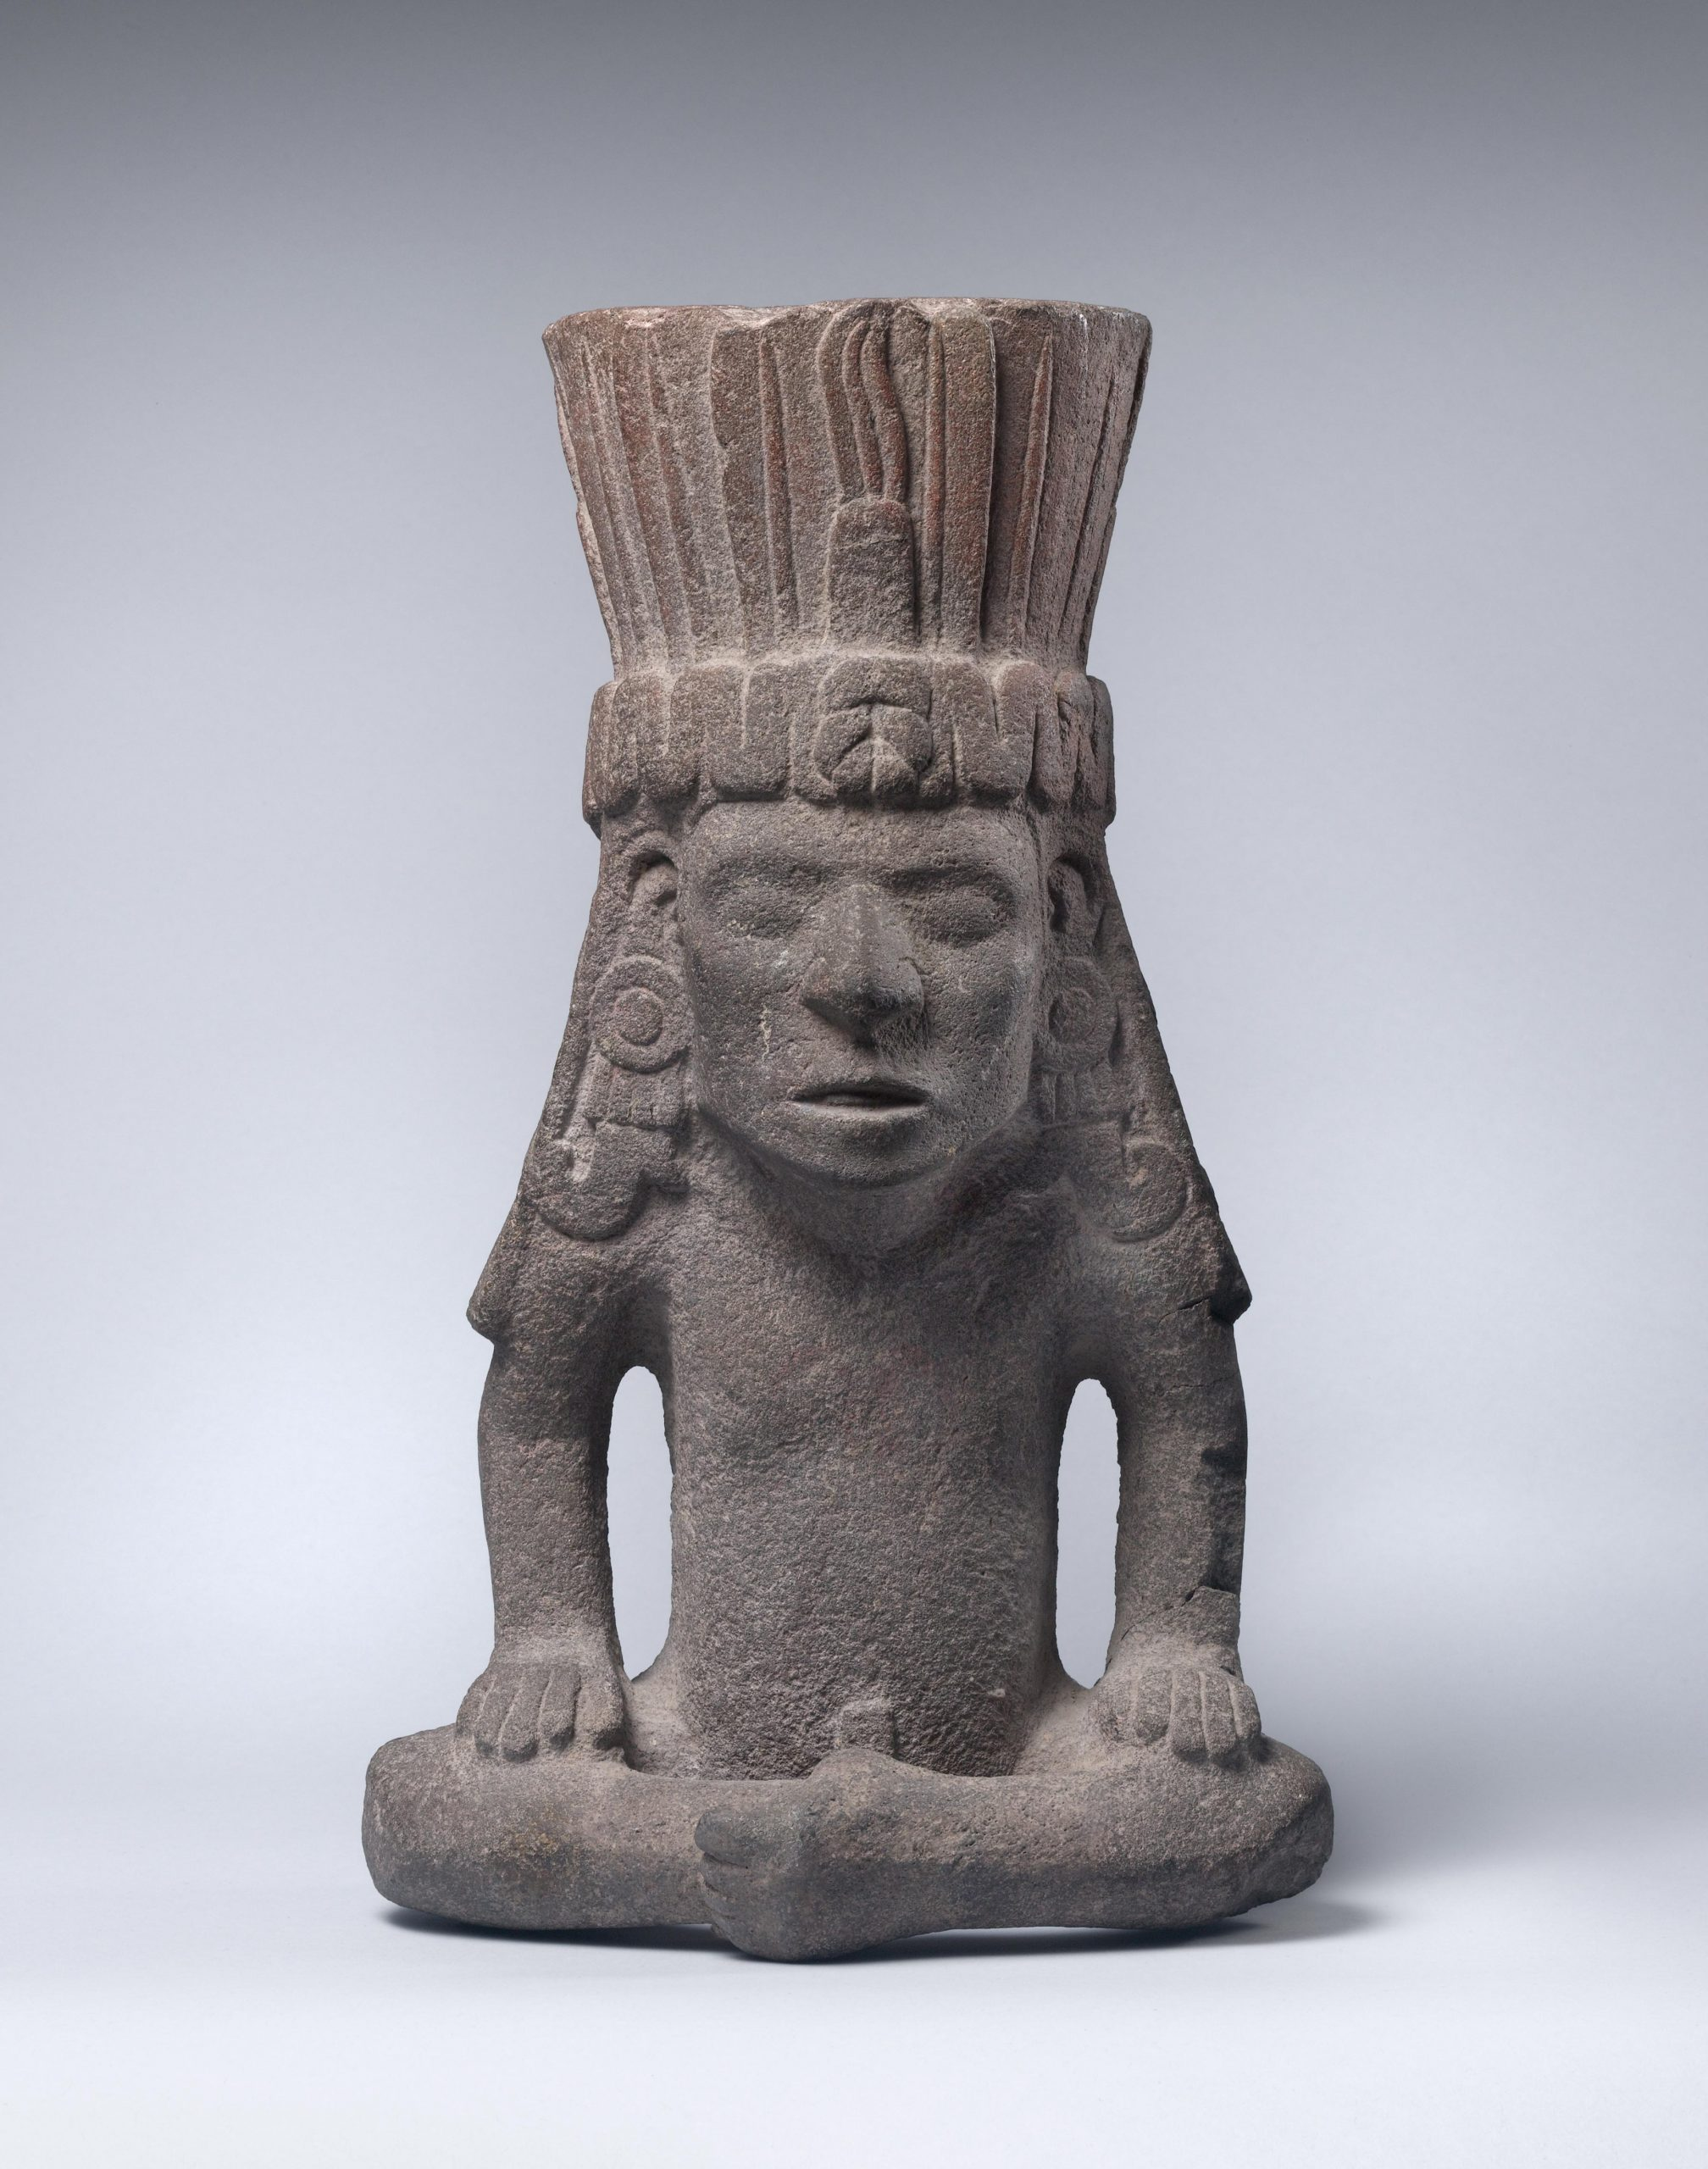 Sculpture of a man seated with crossed legs and wearing a large headdress and long, intricate earings; his mouth is open as if he is in mid-speech.